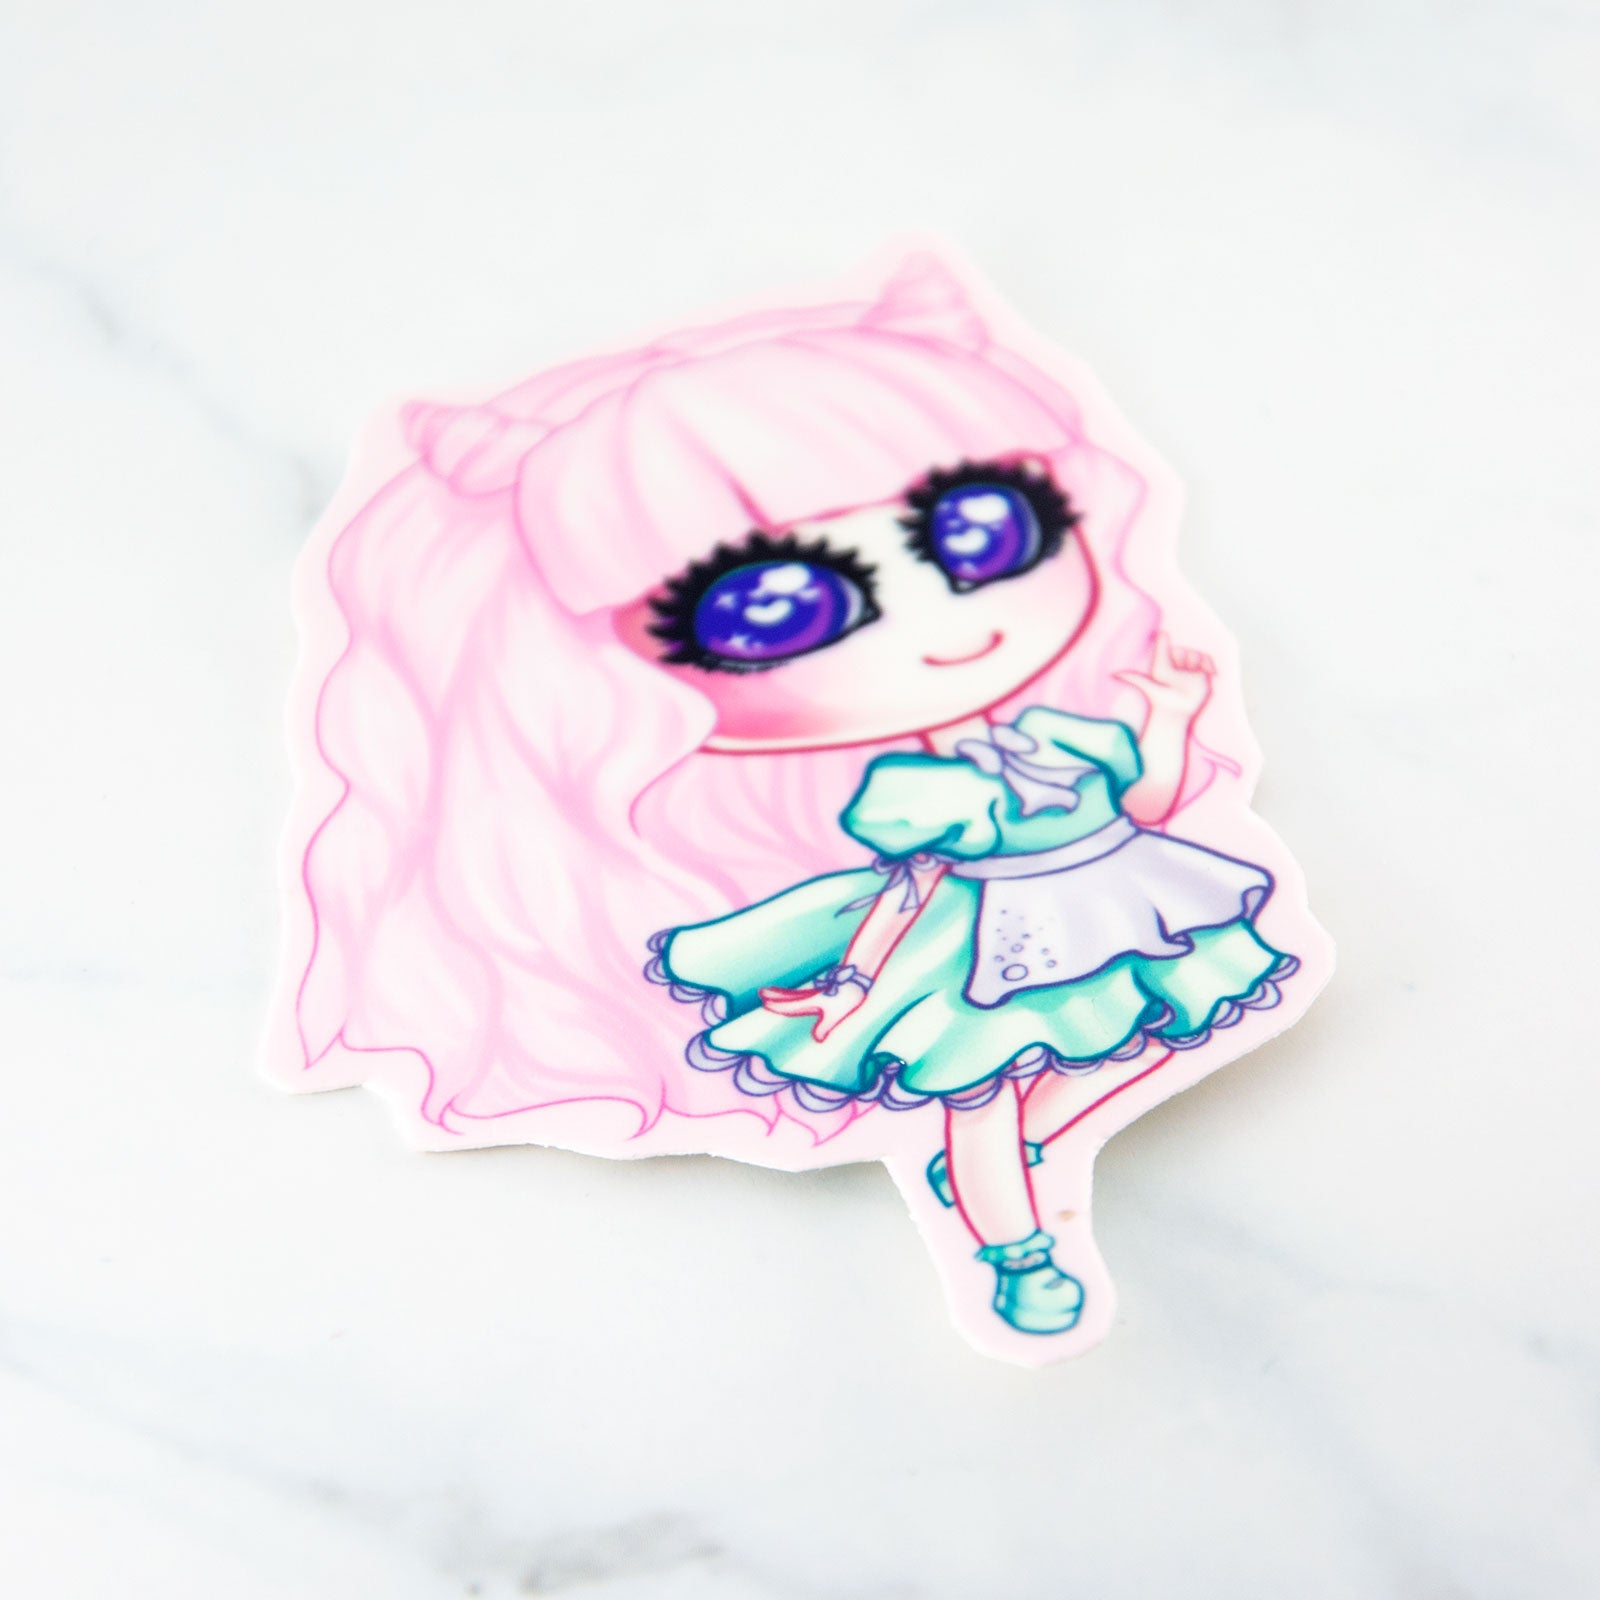 Kawaii fairy kei pastel fashion girl pink sticker - MadModesty